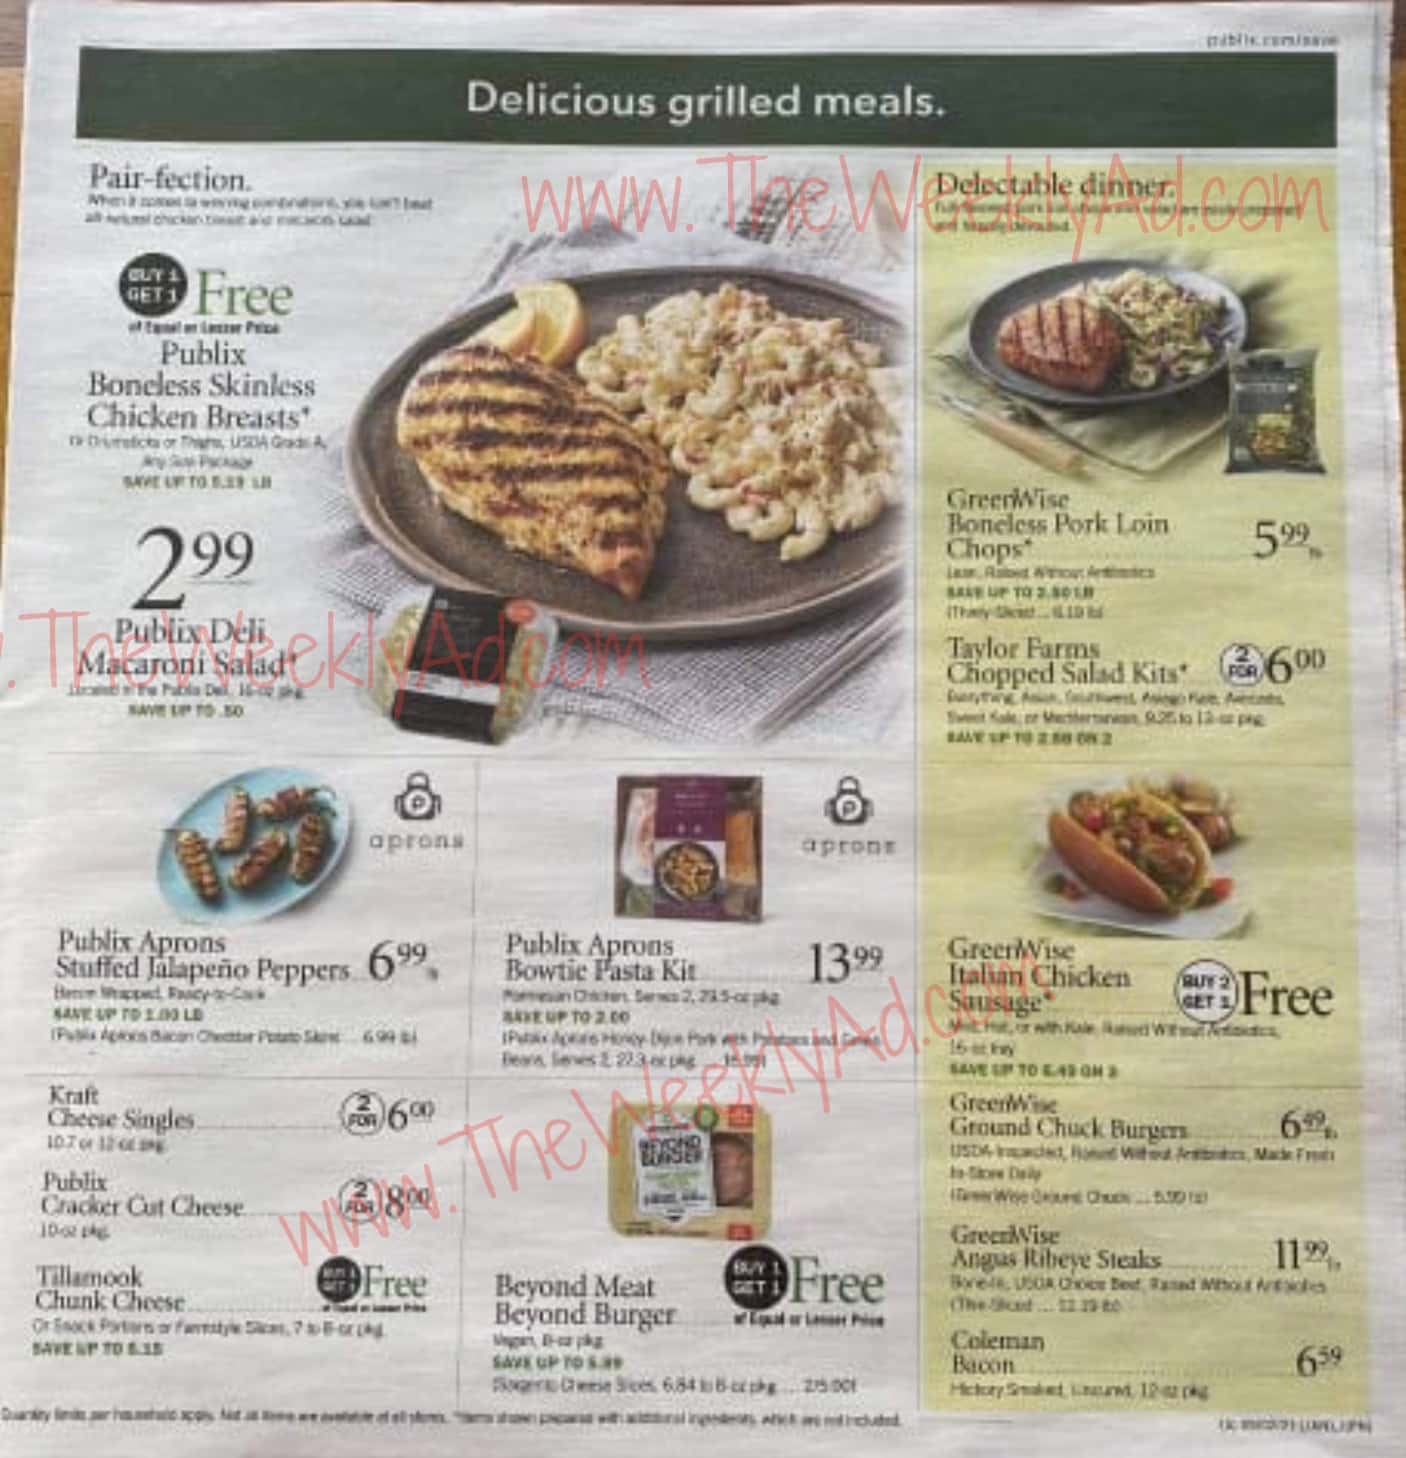 publix_weekly_ad_090121_05